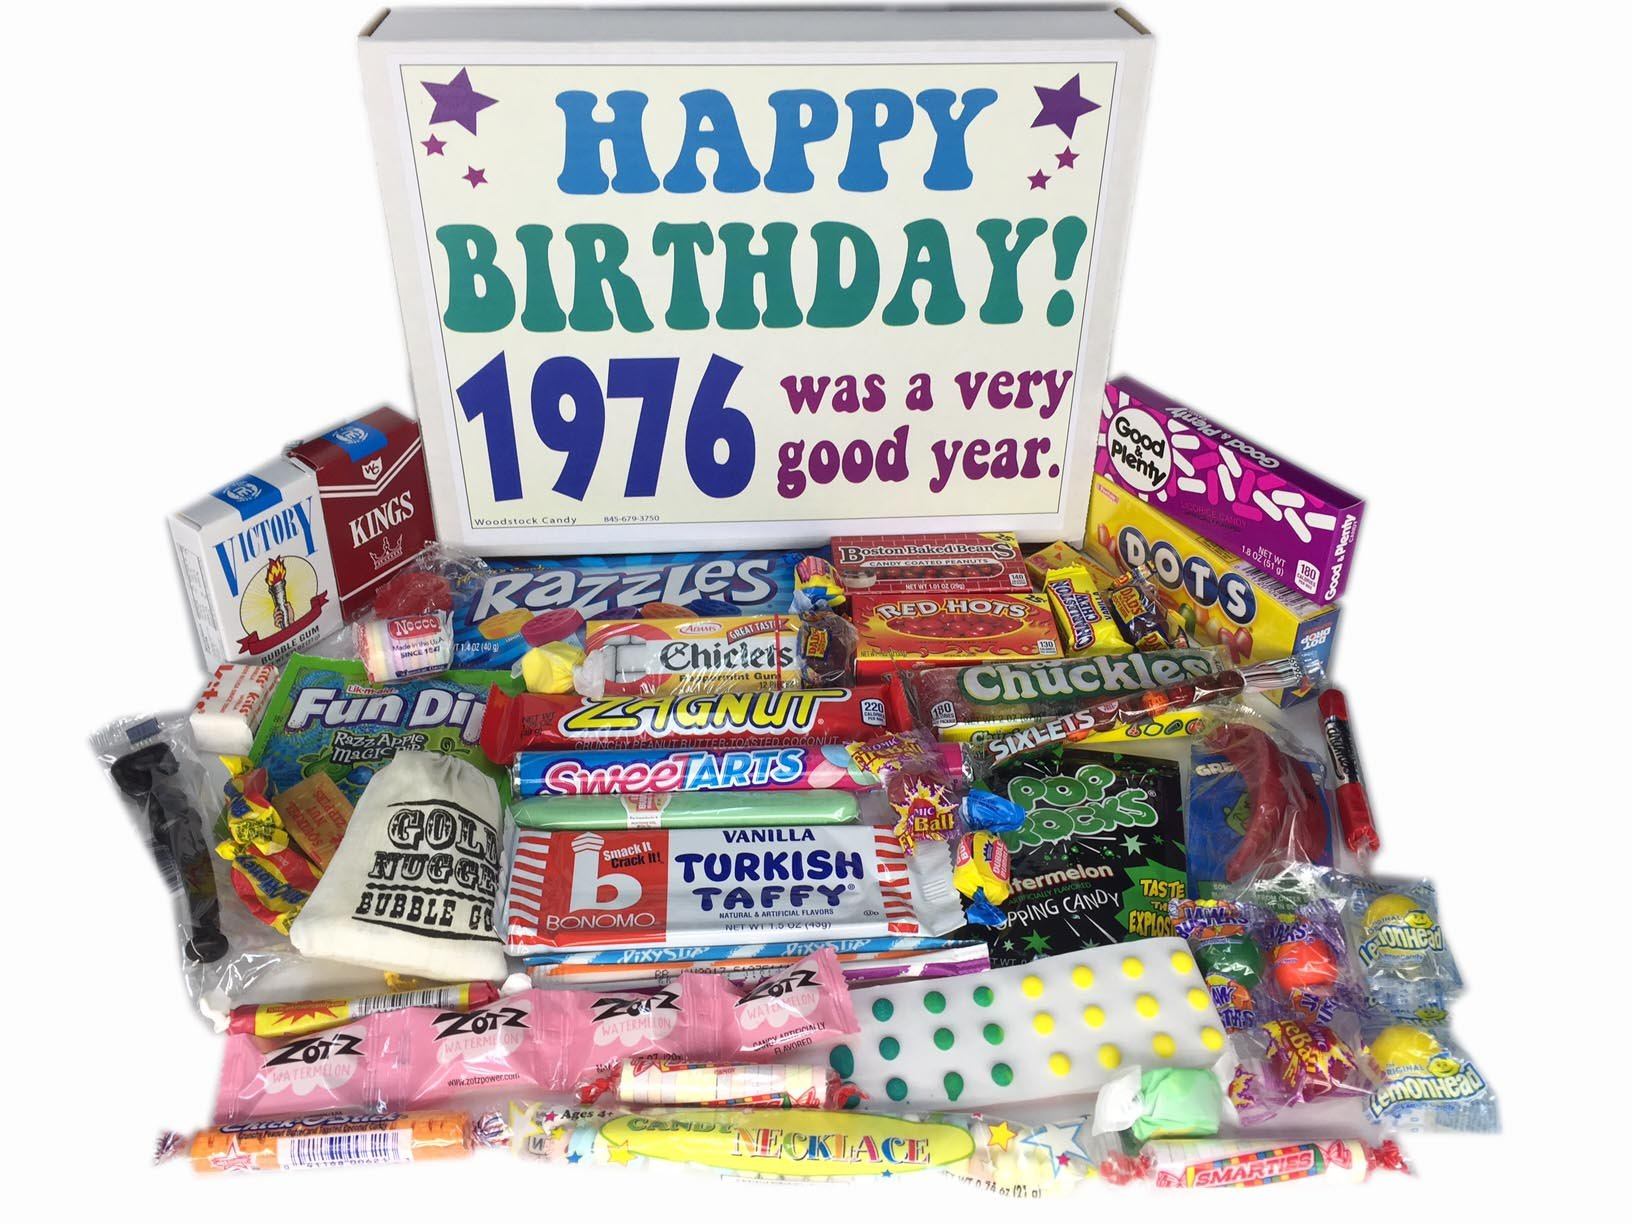 Woodstock Candy 1976 42nd Birthday Gift Box Of Nostalgic Retro From Childhood For A 42